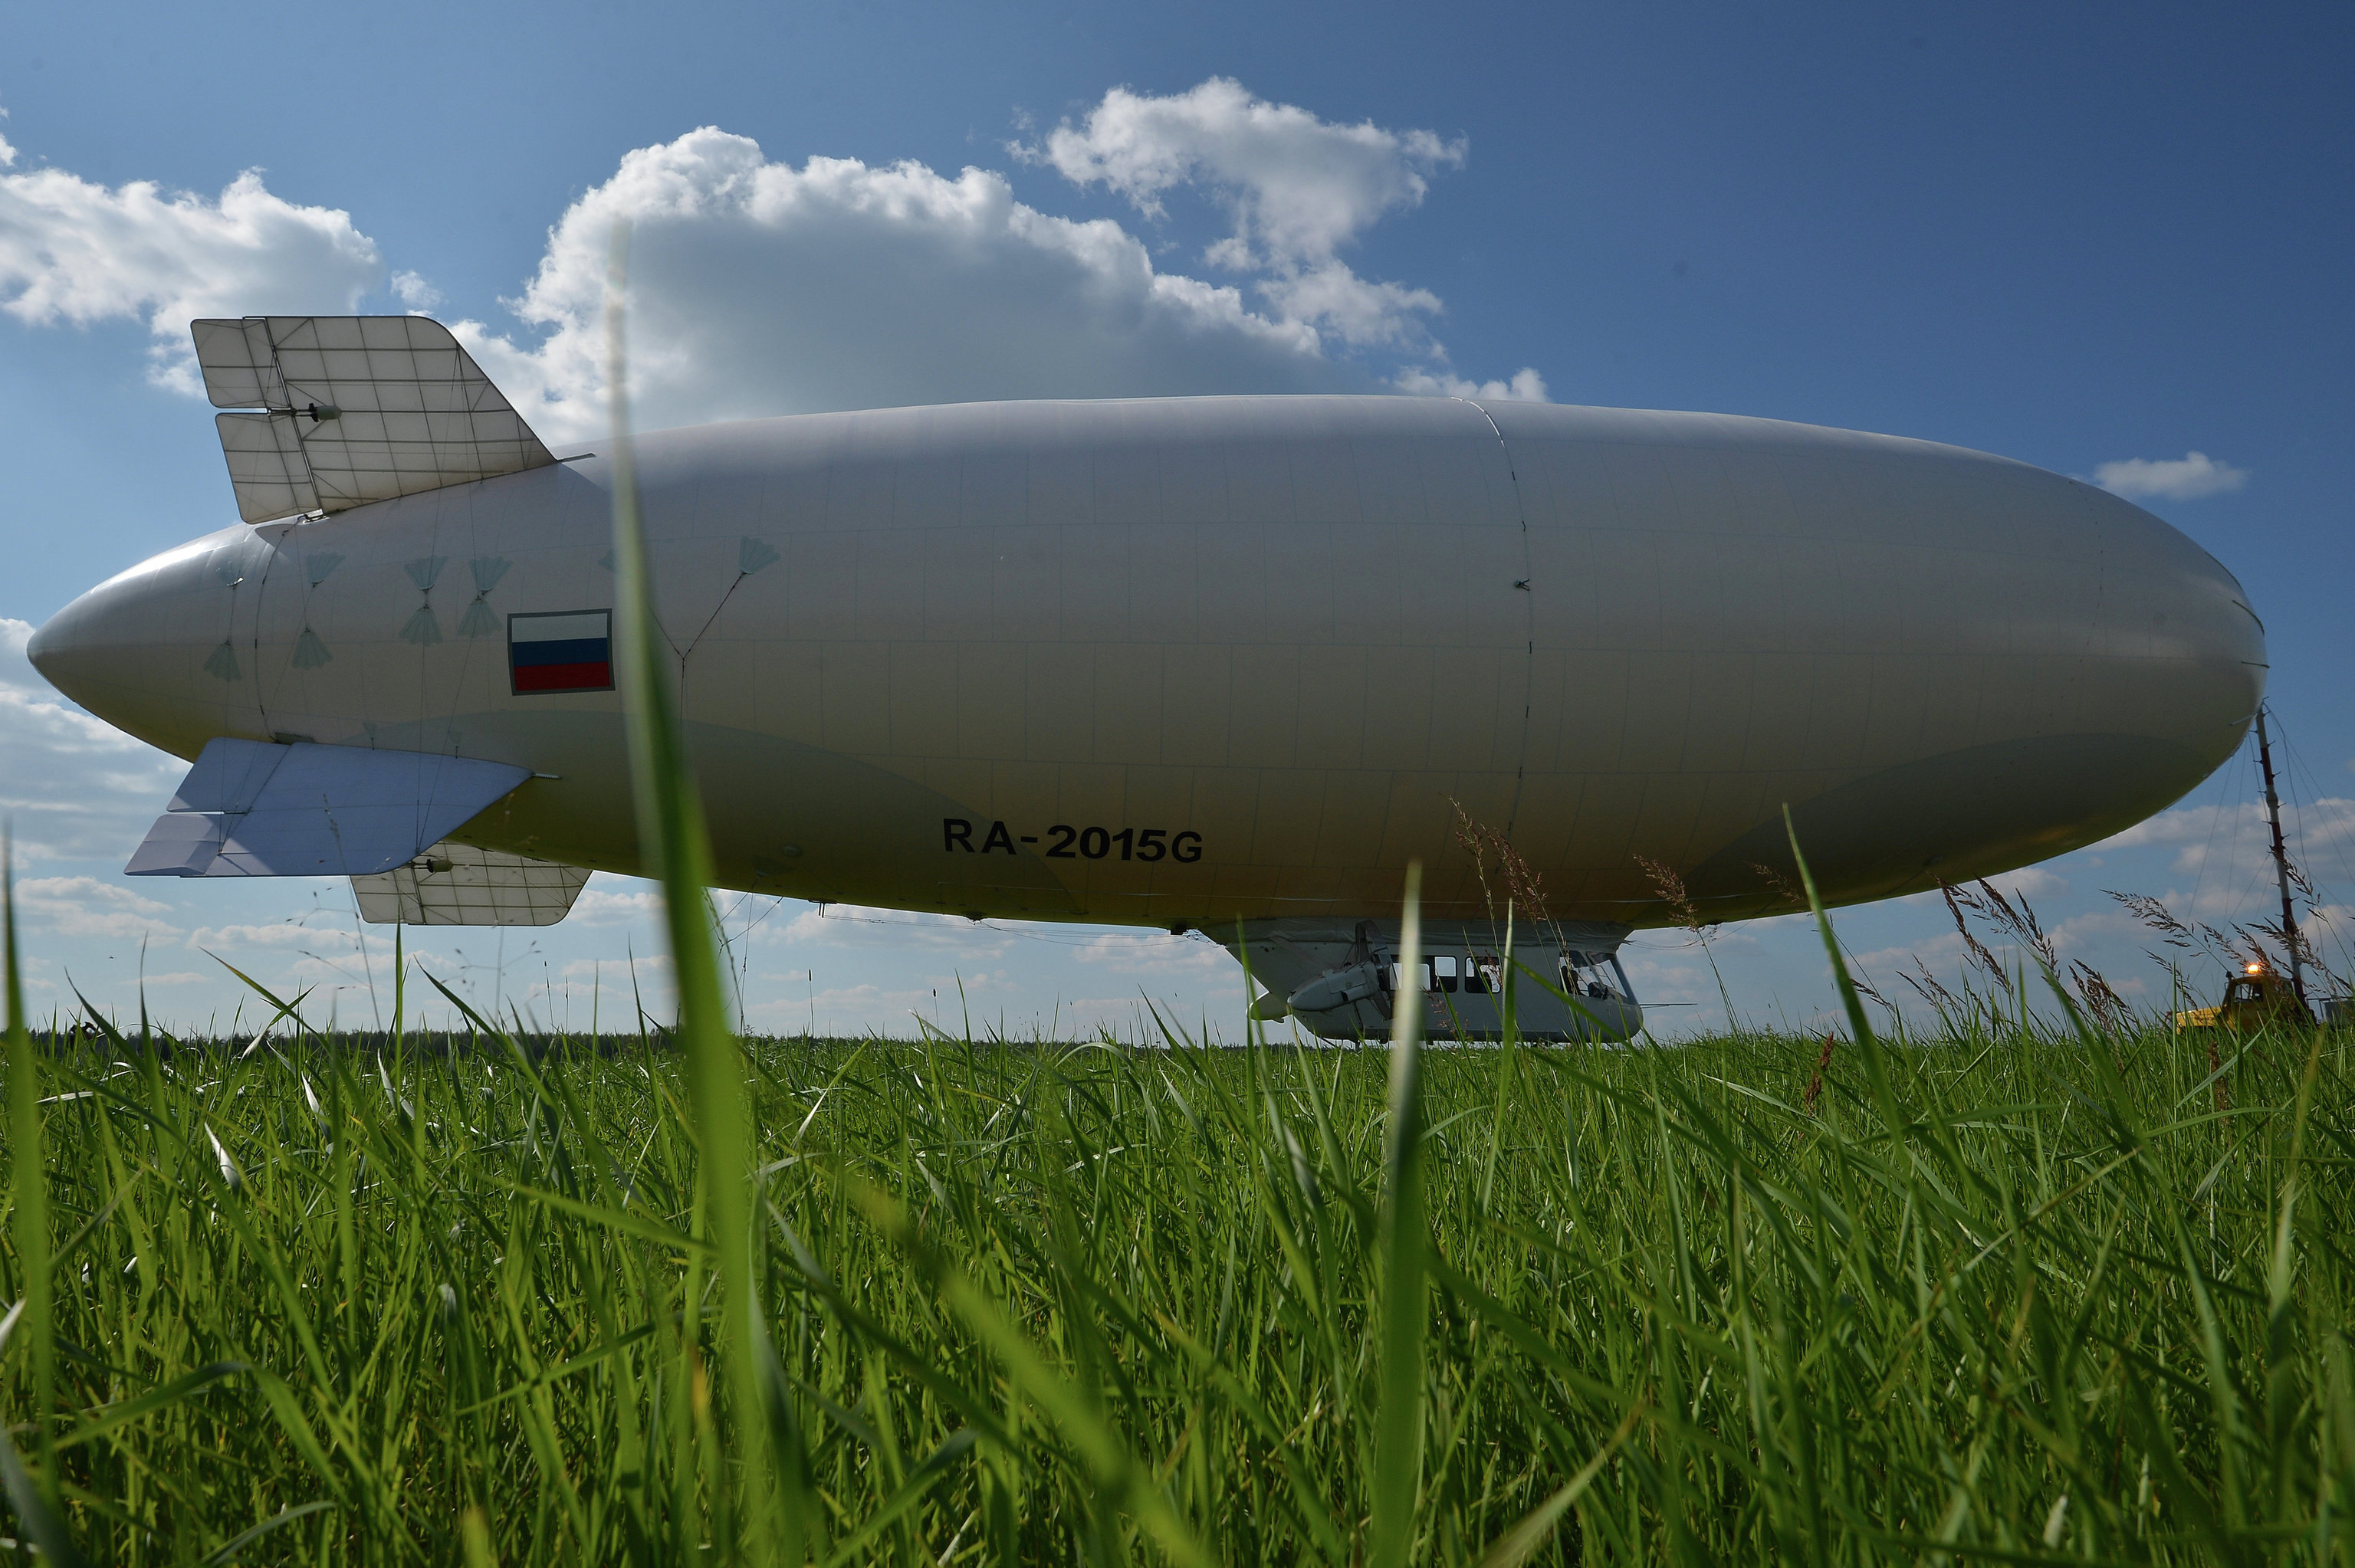 The Au-30 airship